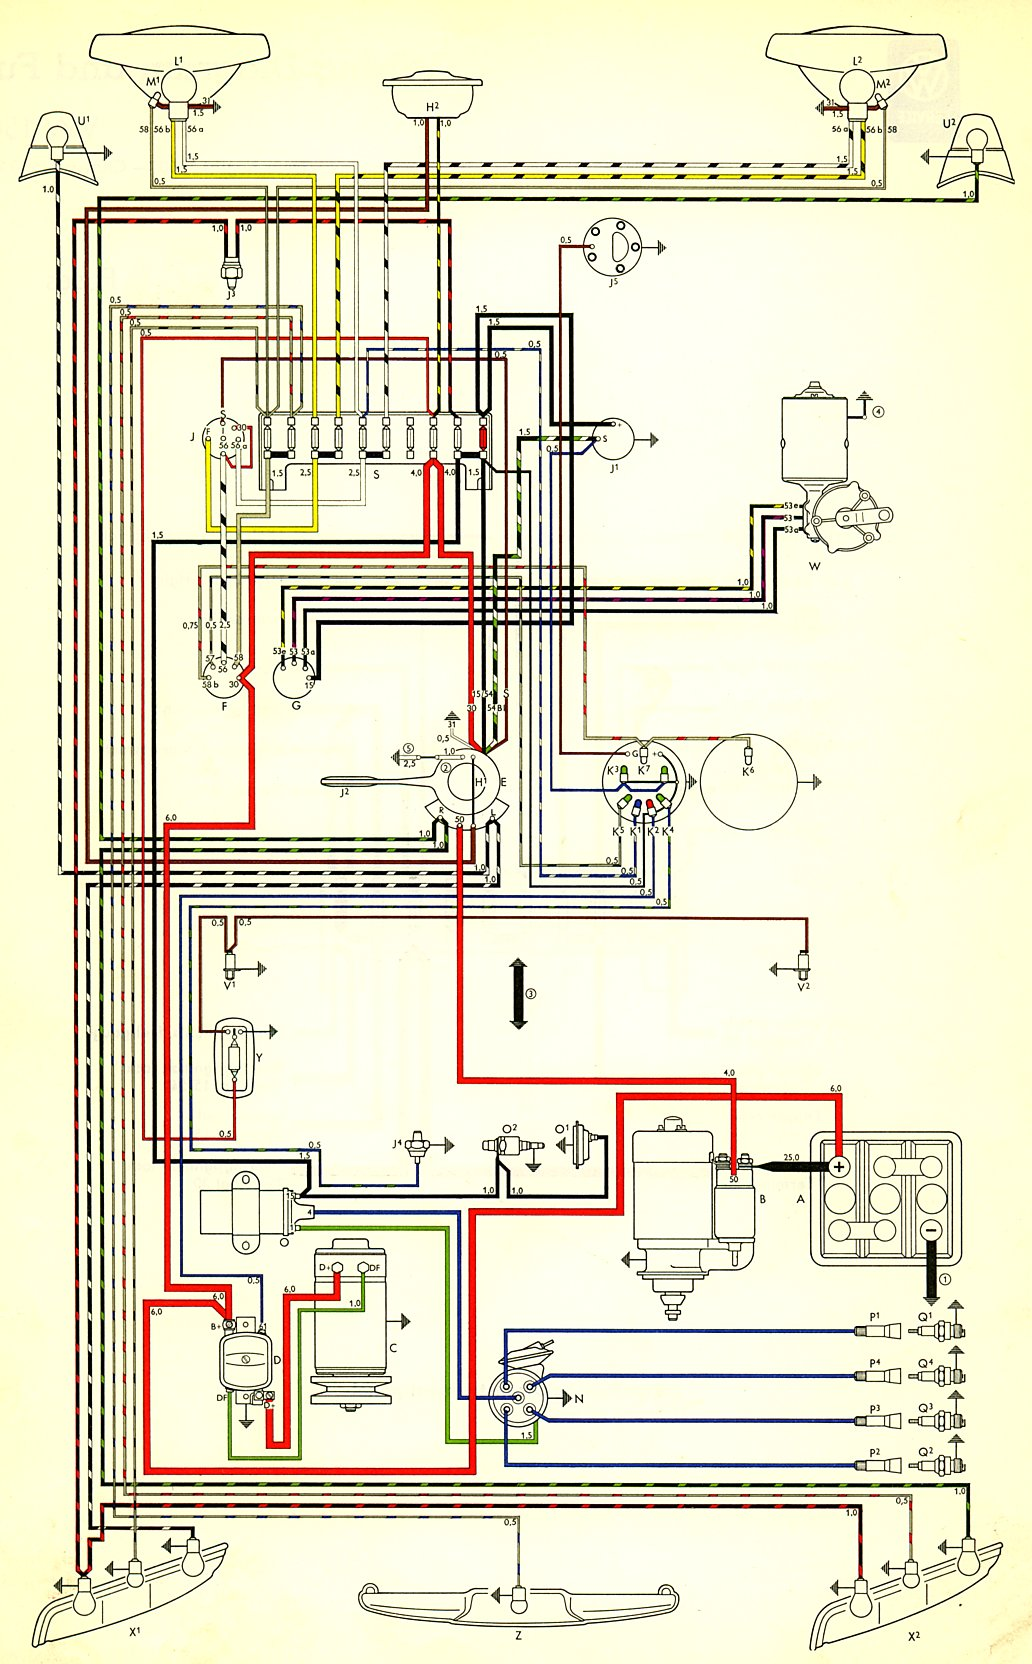 thesamba com type 3 wiring diagrams VW Voltage Regulator Wiring Diagram Vw Type 3 Wiring Diagram #3